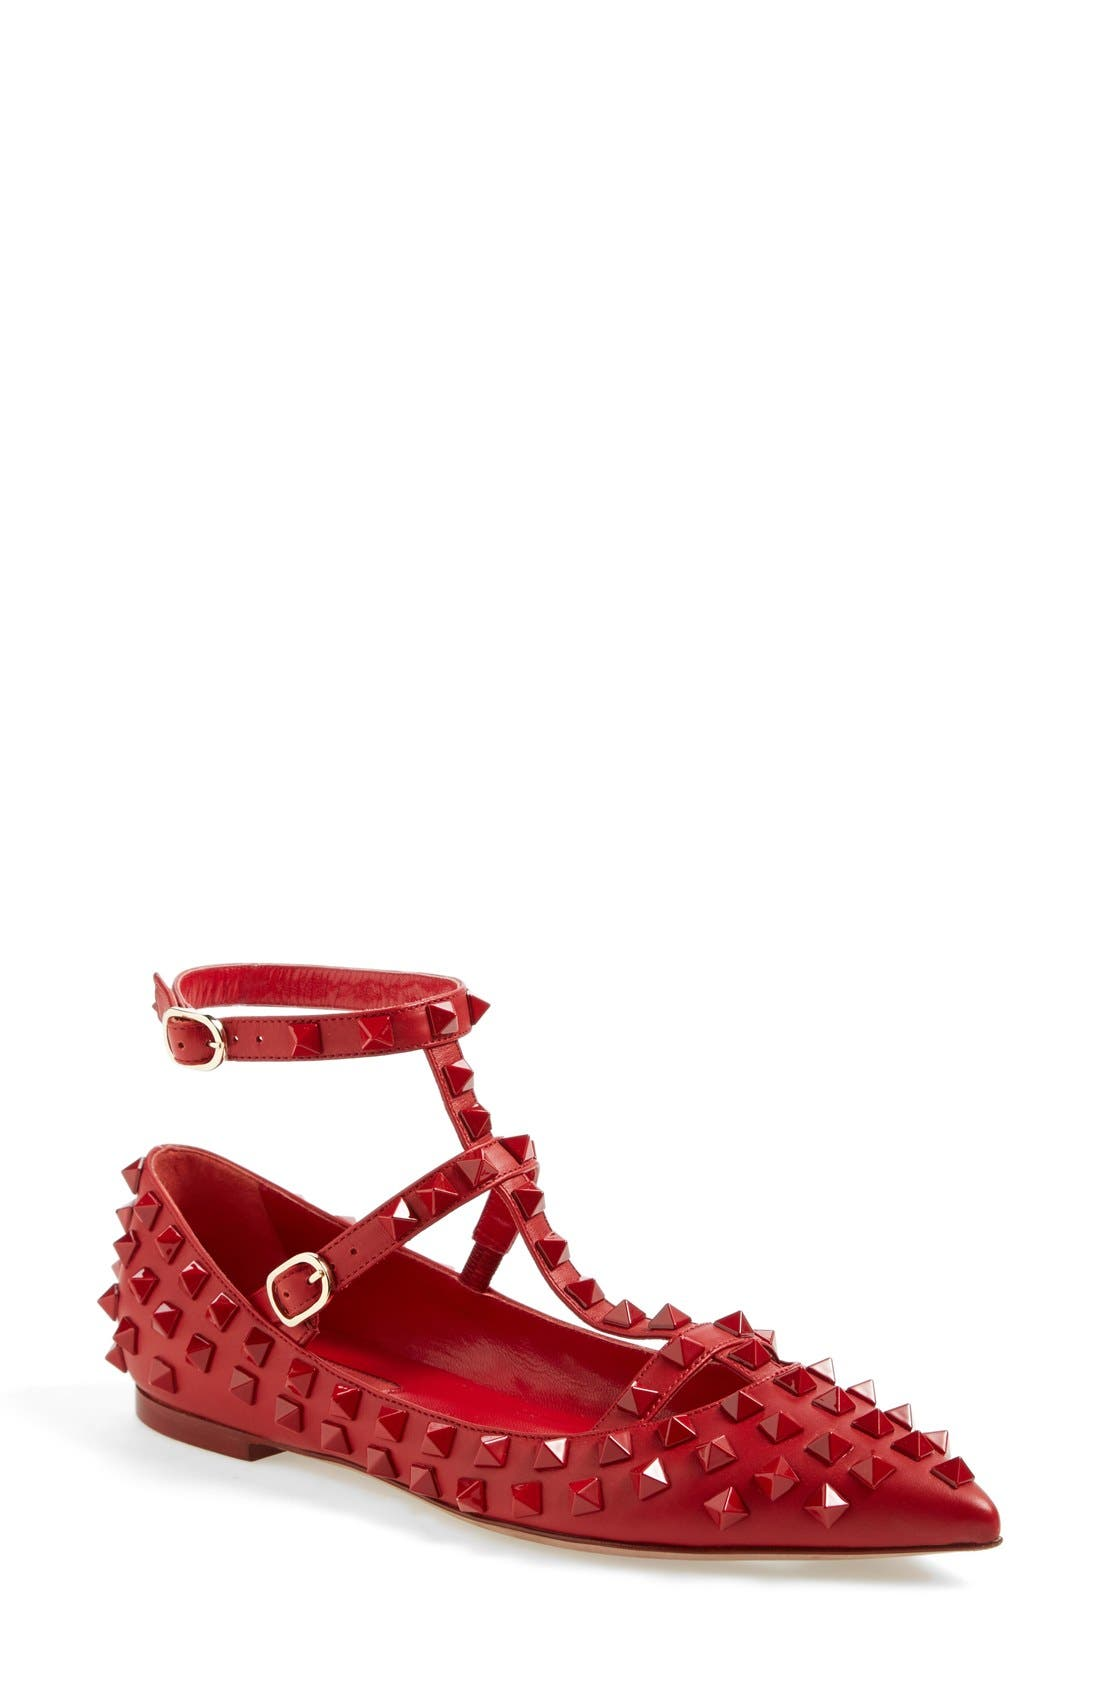 Alternate Image 1 Selected - Valentino 'Rockstud' T-Strap Pointy Toe Flat (Women)